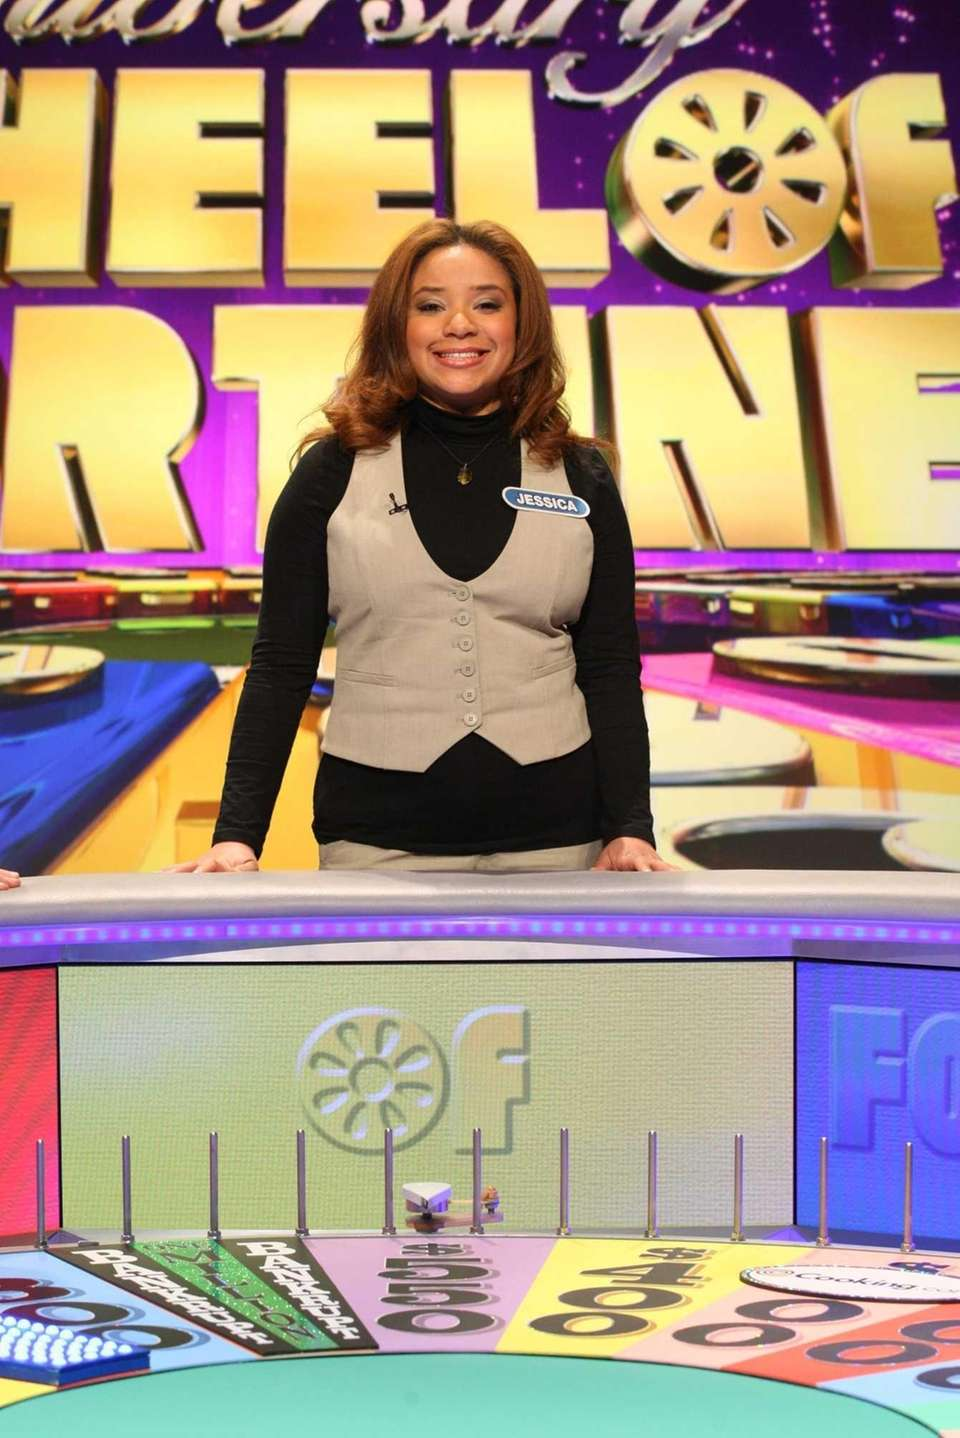 Westbury's Jessica Stean won $25,262 on an episode